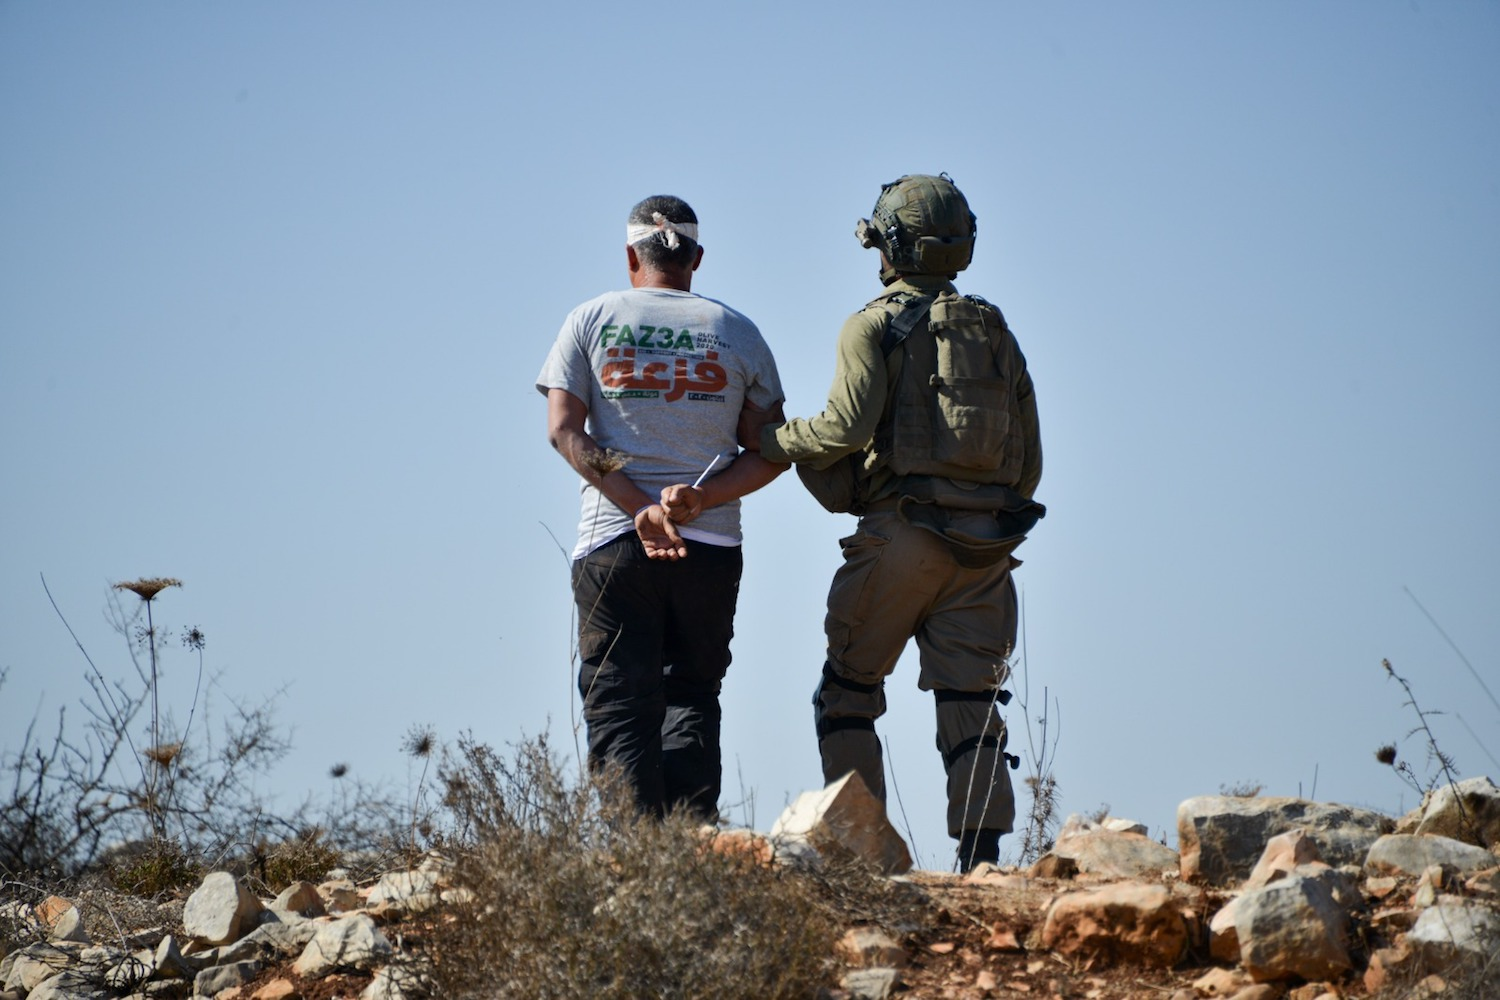 Israeli soldiers arrest a blindfolded Mohammad Khatib during the olive harvest near a settlement outpost established on Palestinian land in the Salfit area of the West Bank, October 11, 2021. (Matan Golan)